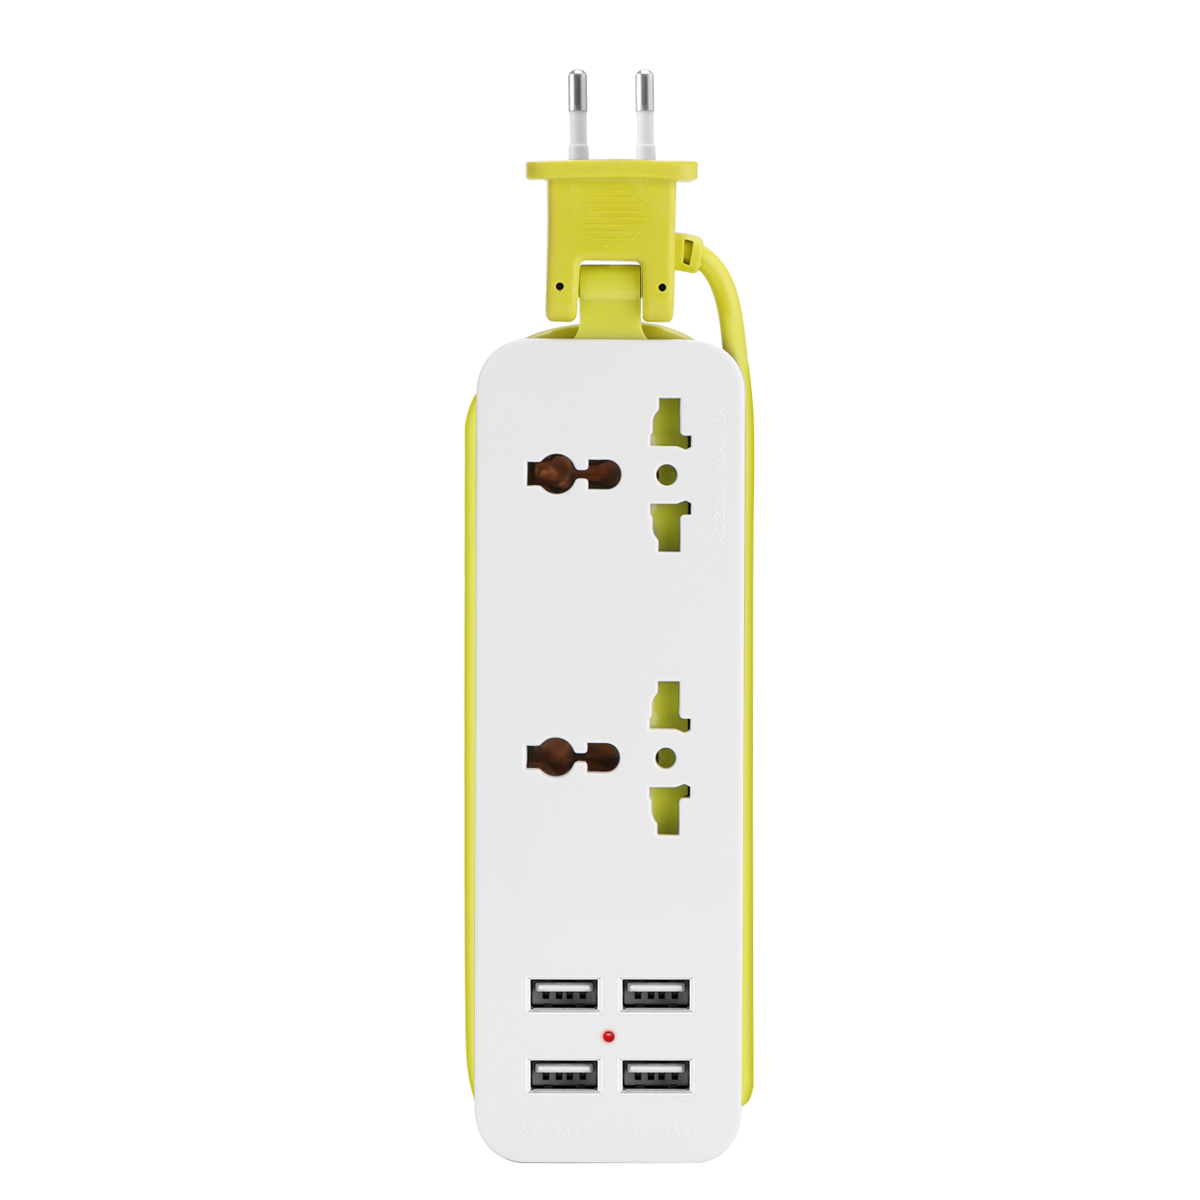 The Grid 9 Outlet Power Strip Charging Station 4 Rapid Charge USB Ports Surge